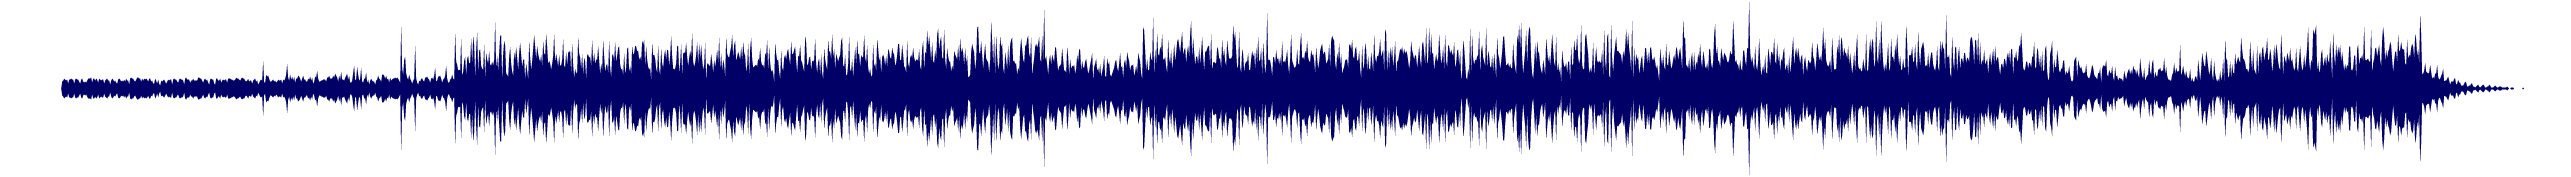 waveform of track #66349